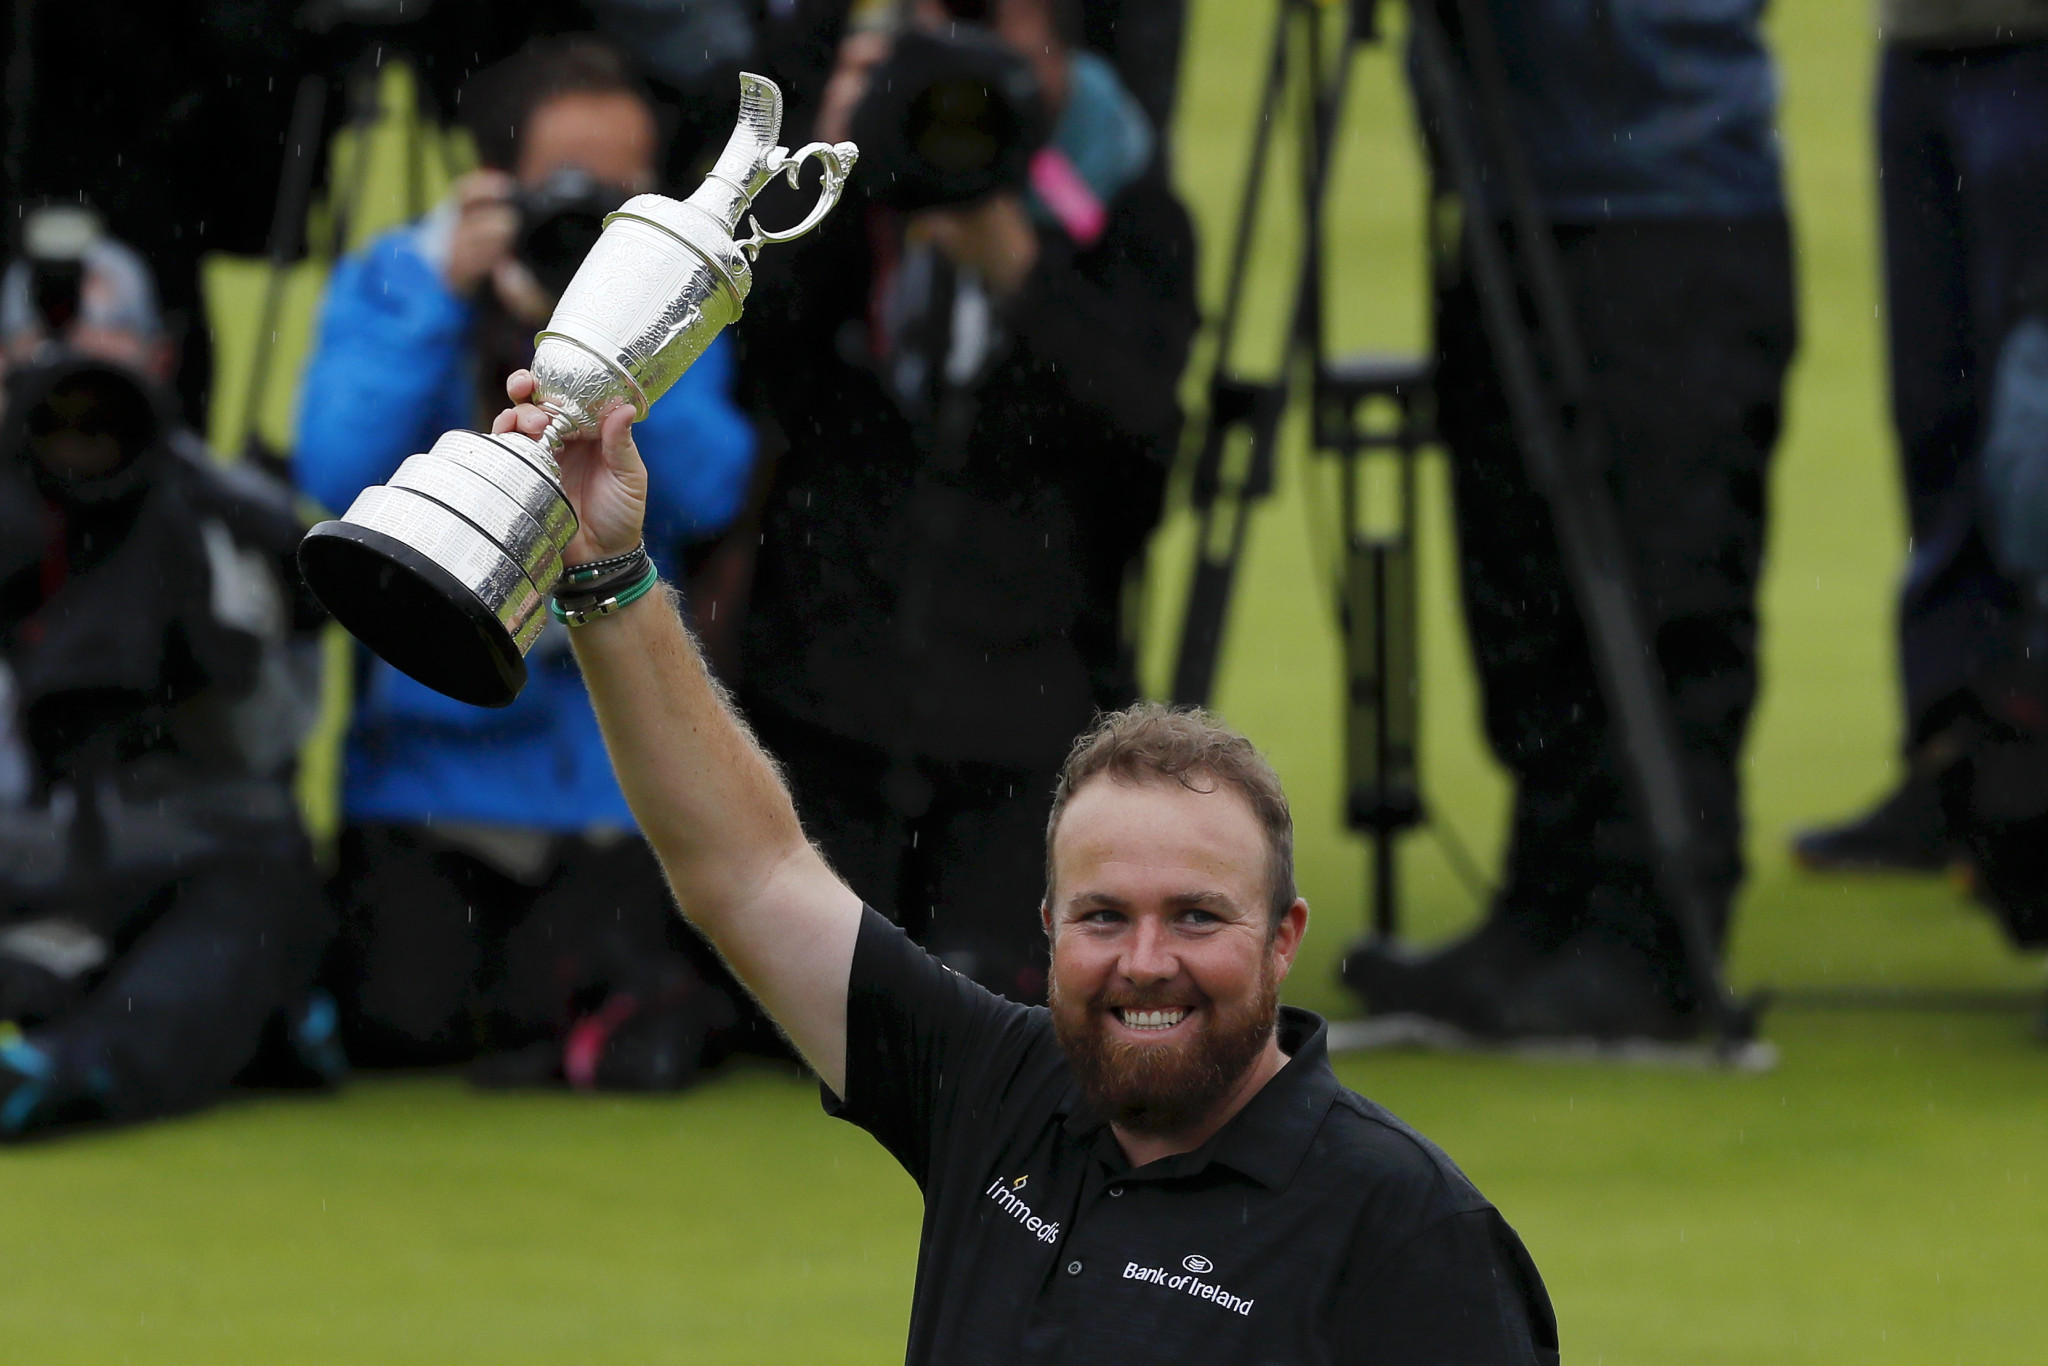 Ireland's Shane Lowry produced a composed final round at Royal Portrush ©Getty Images